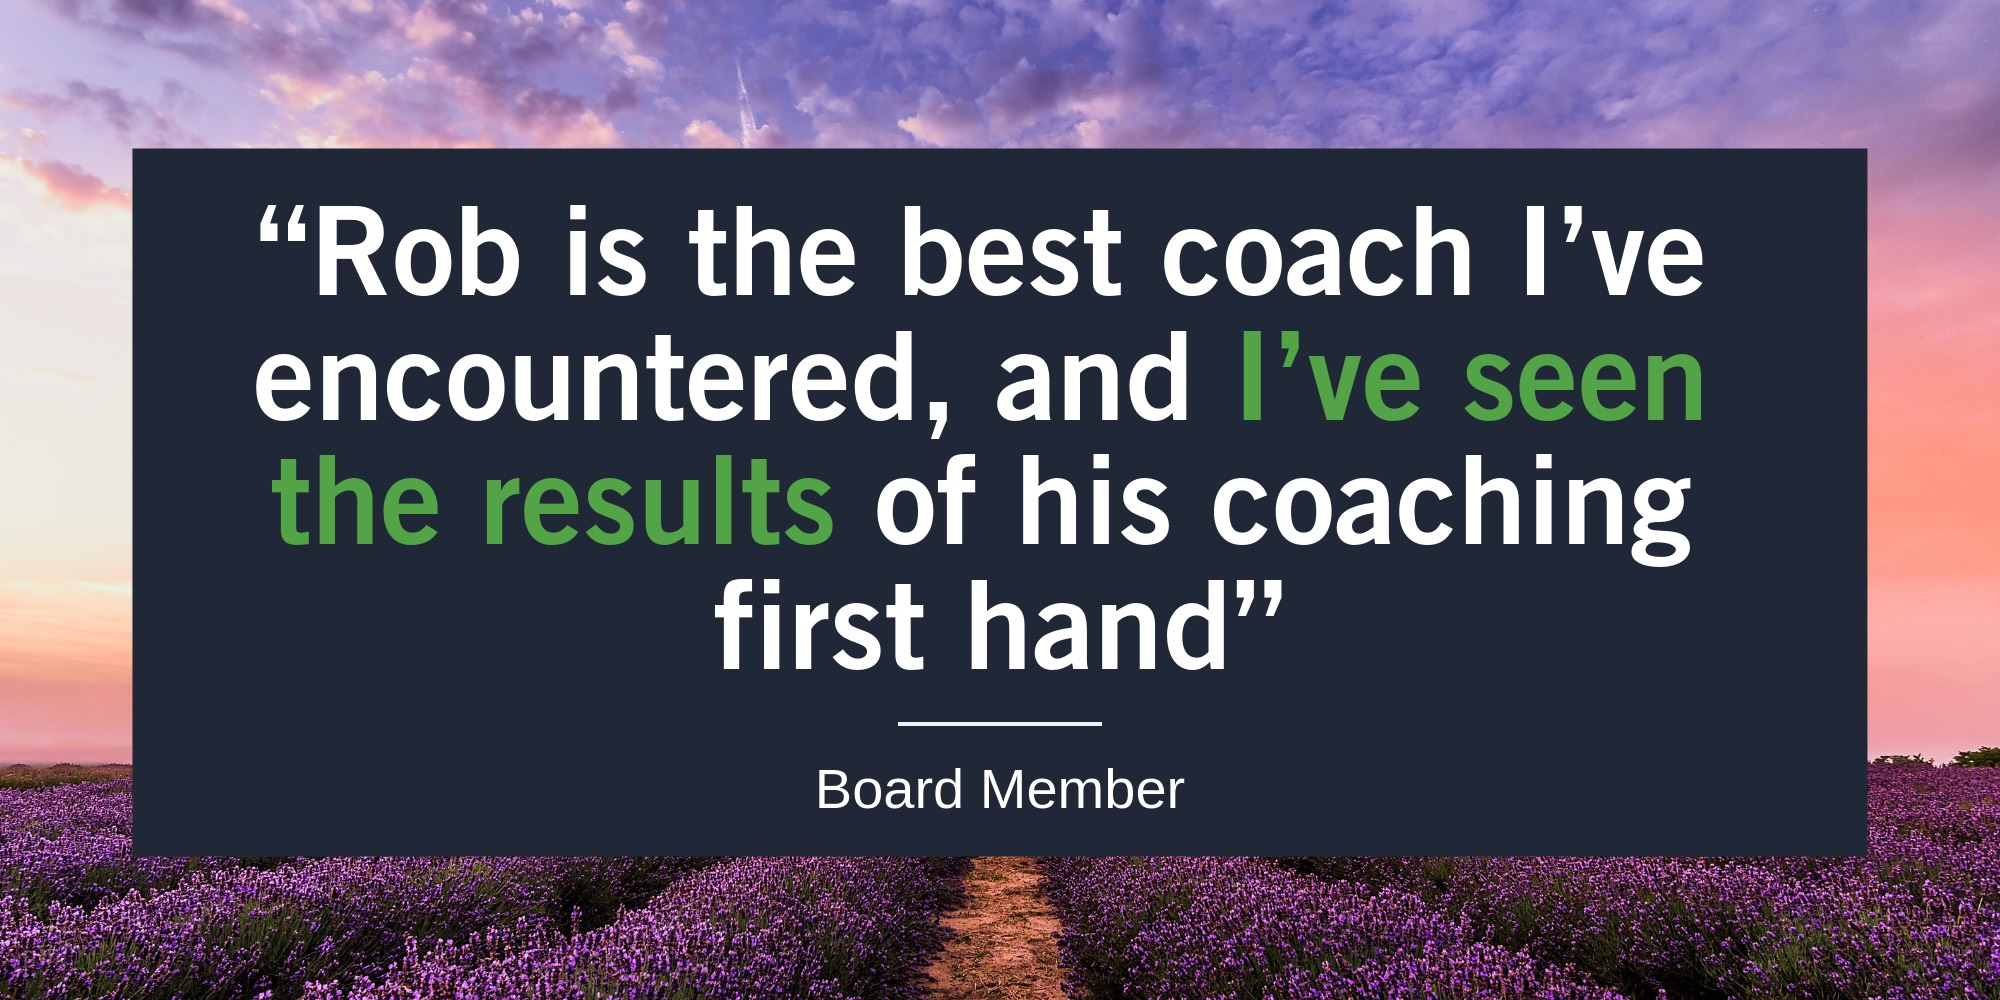 Coach website quote.jpeg